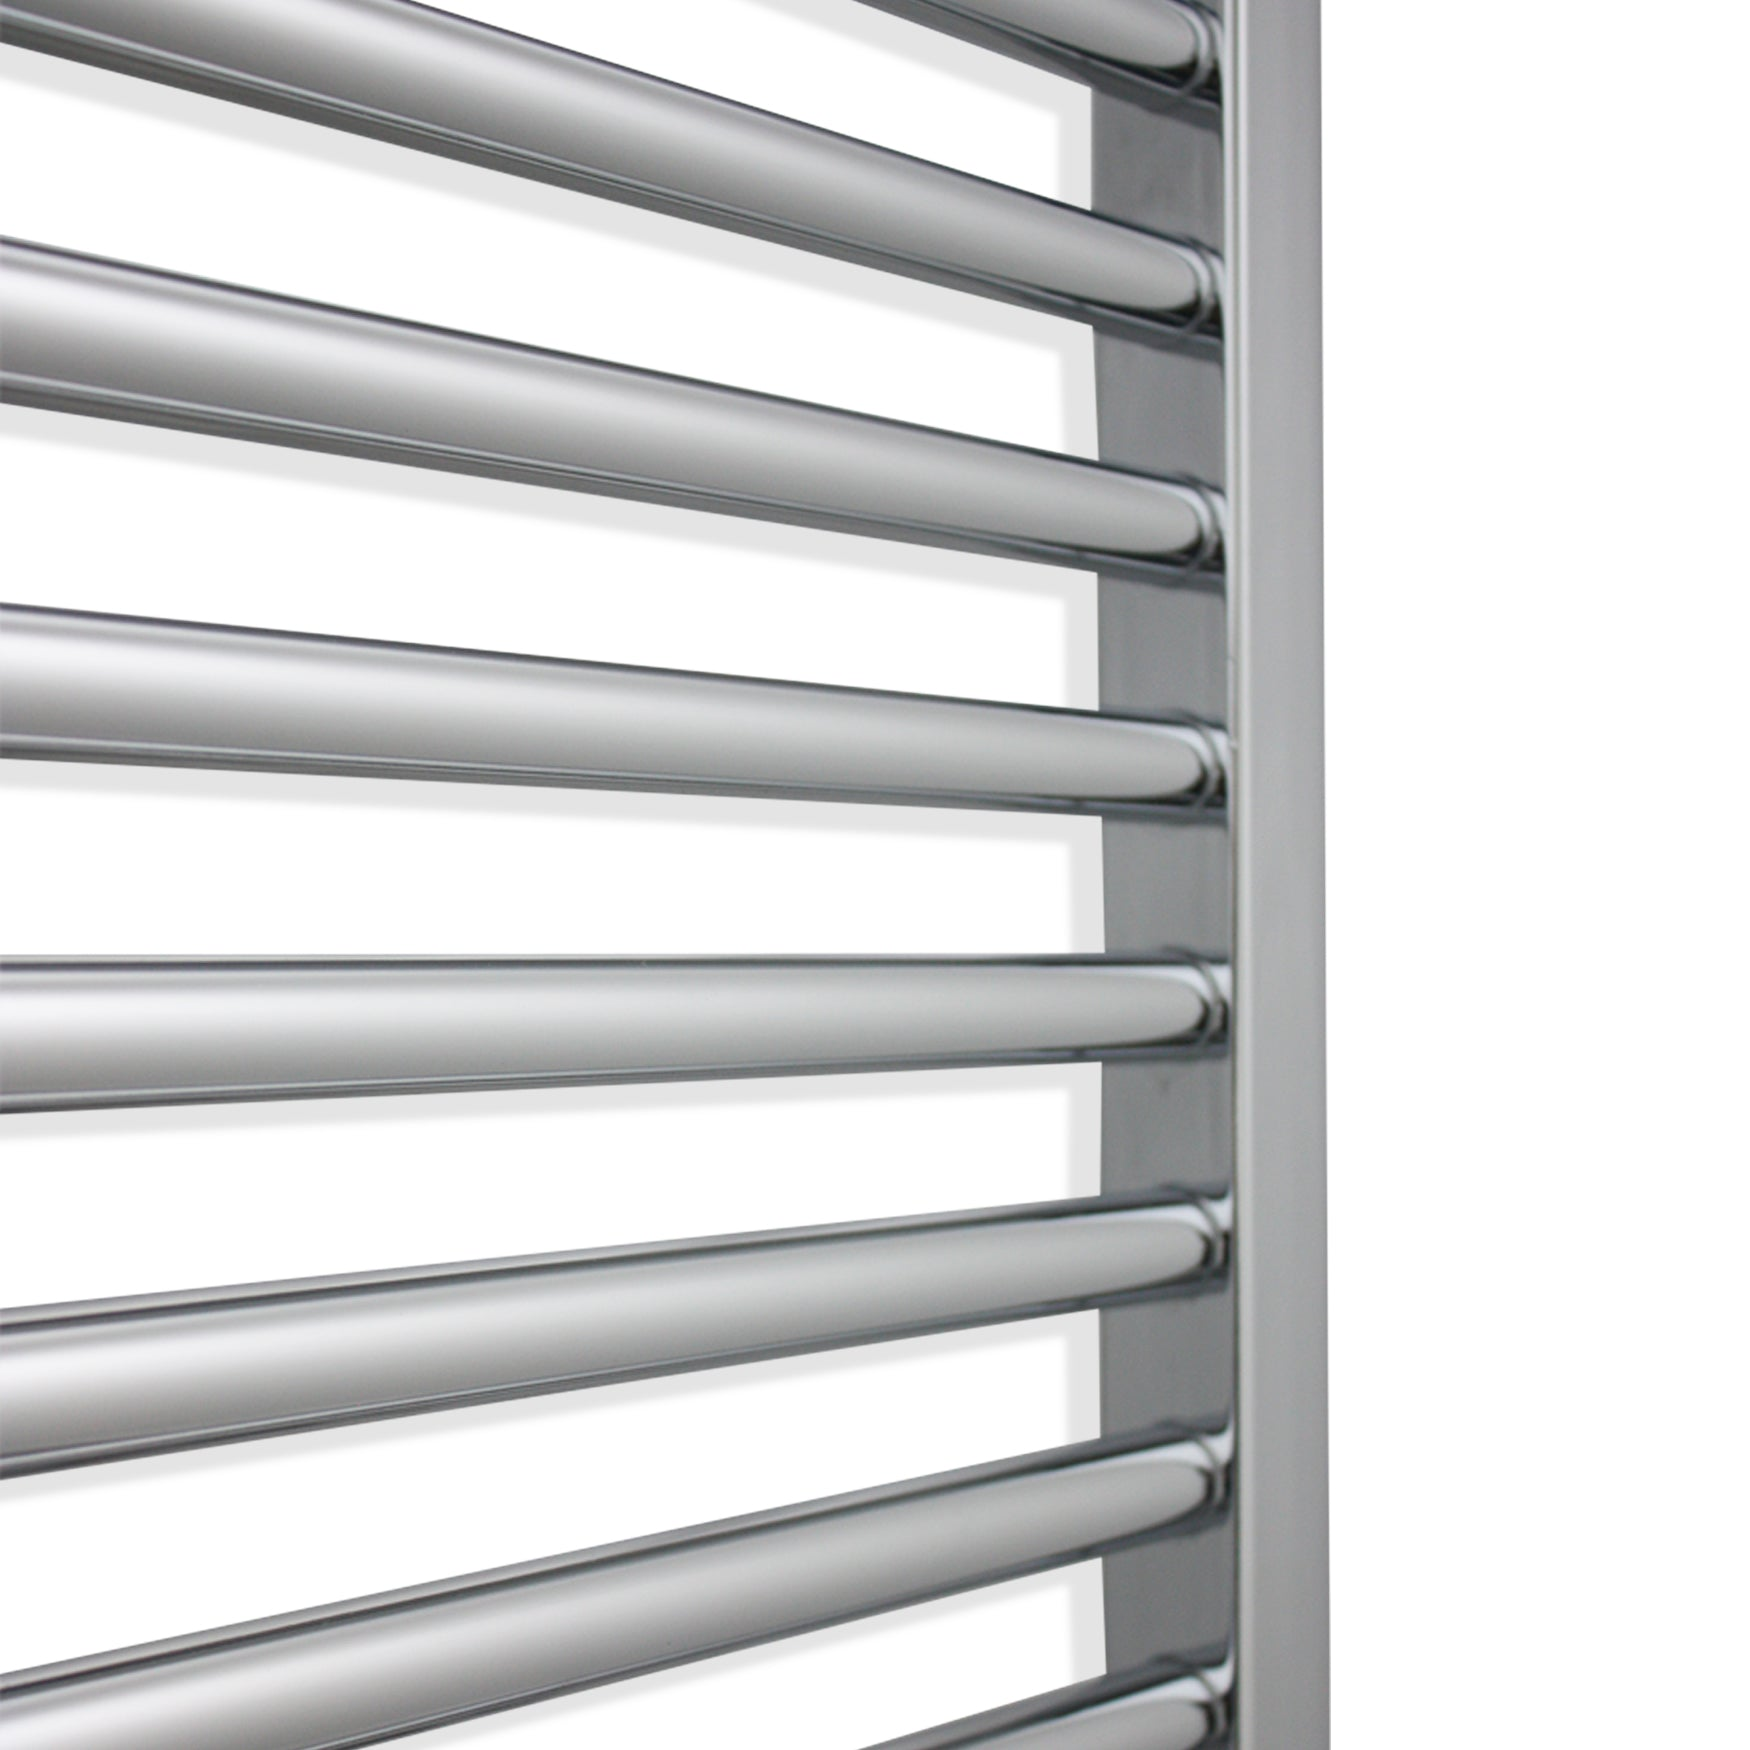 350mm Wide 600mm High Flat Chrome Pre-Filled Electric Heated Towel Rail Radiator HTR